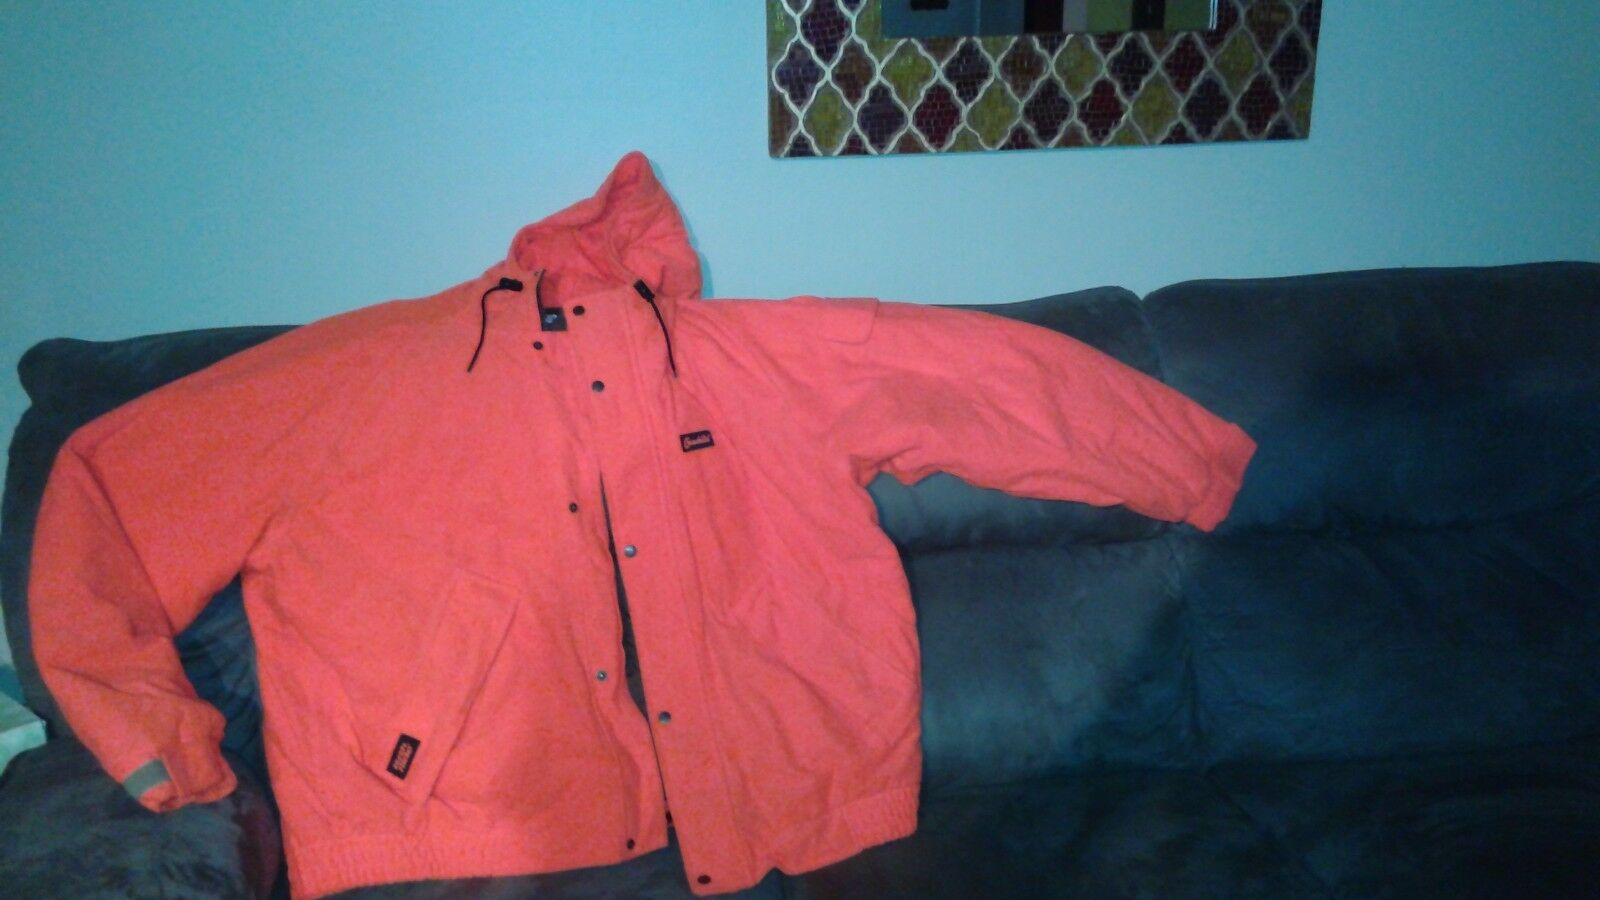 Gamehide Blaze orange Deer Camp Insulated Parka